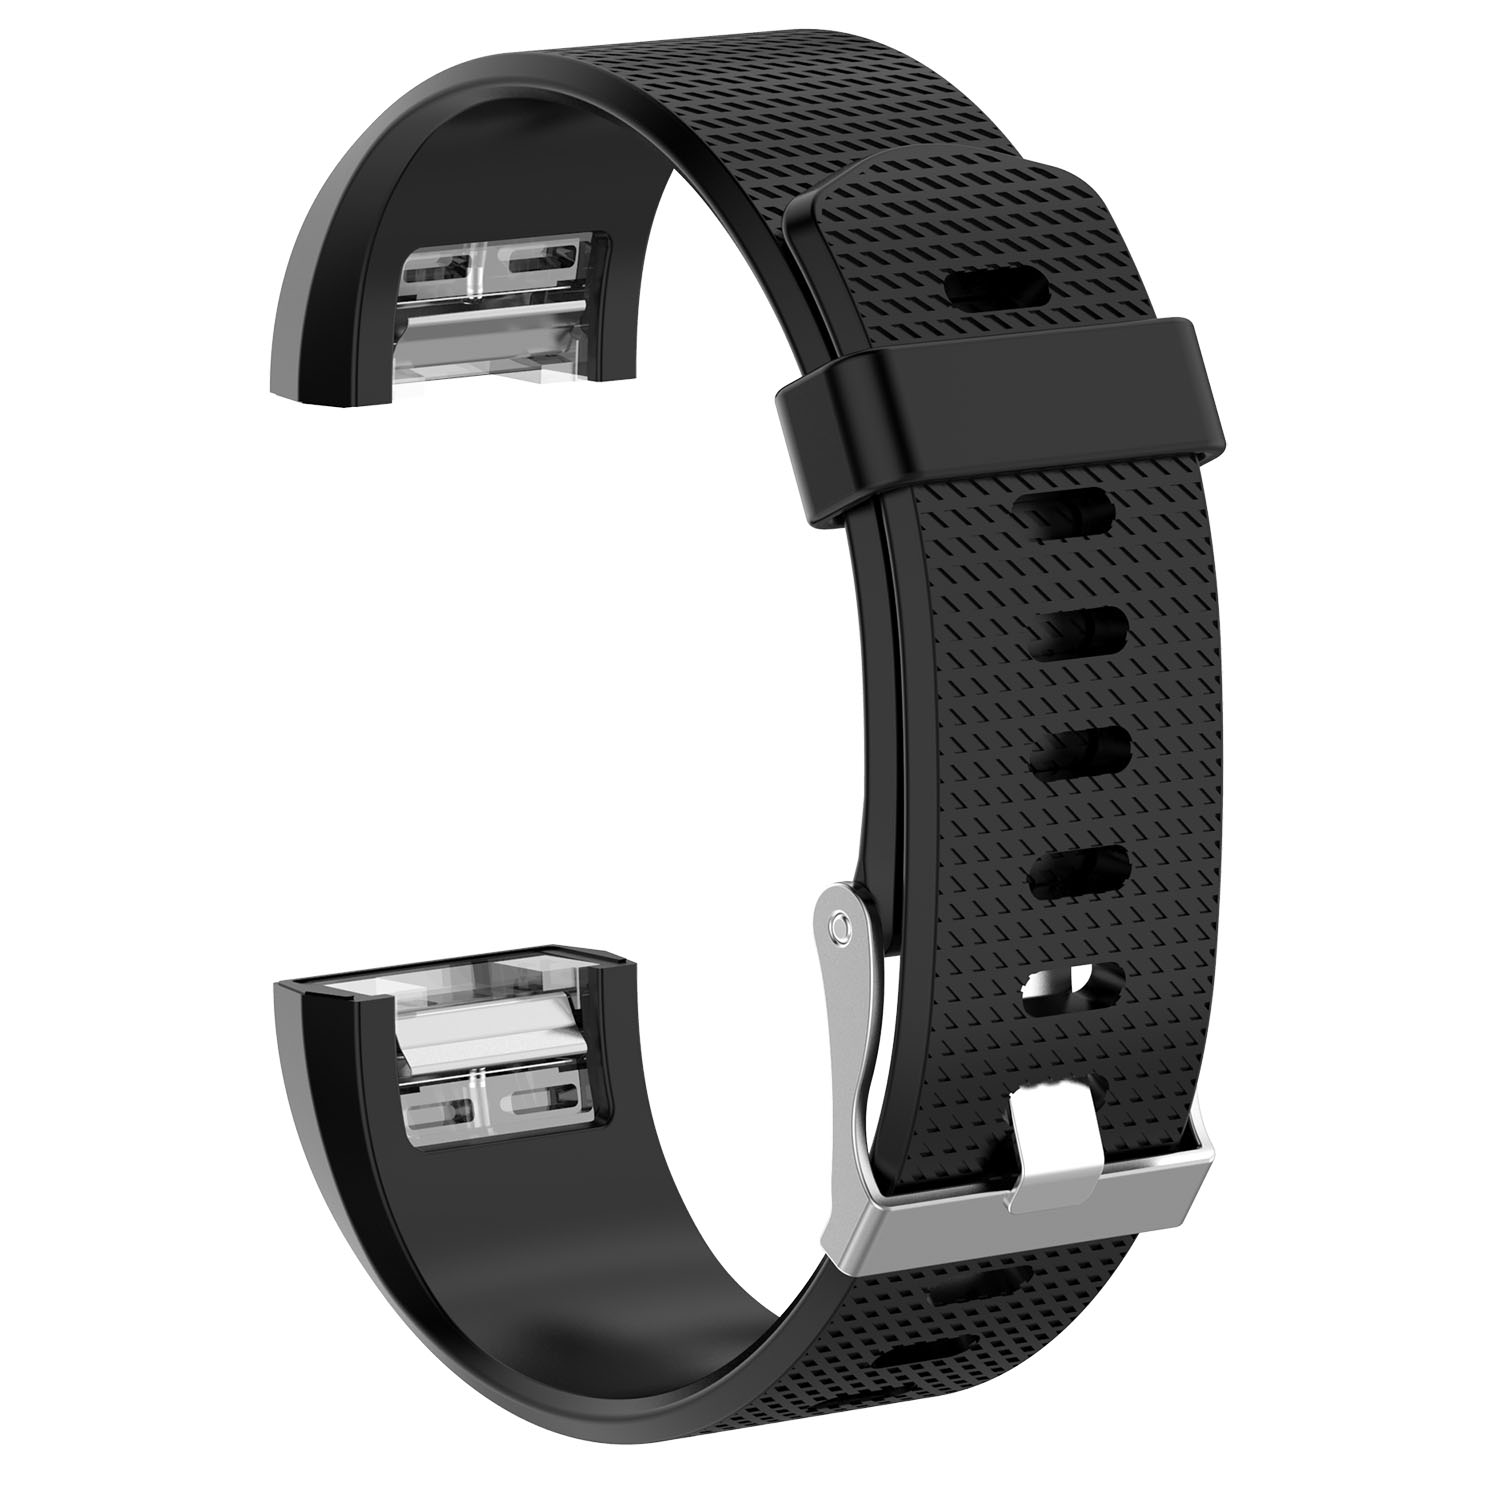 Replacement-Silicone-Wristband-Watch-Strap-Bands-Bracelet-For-Fitbit-Charge-2 thumbnail 15